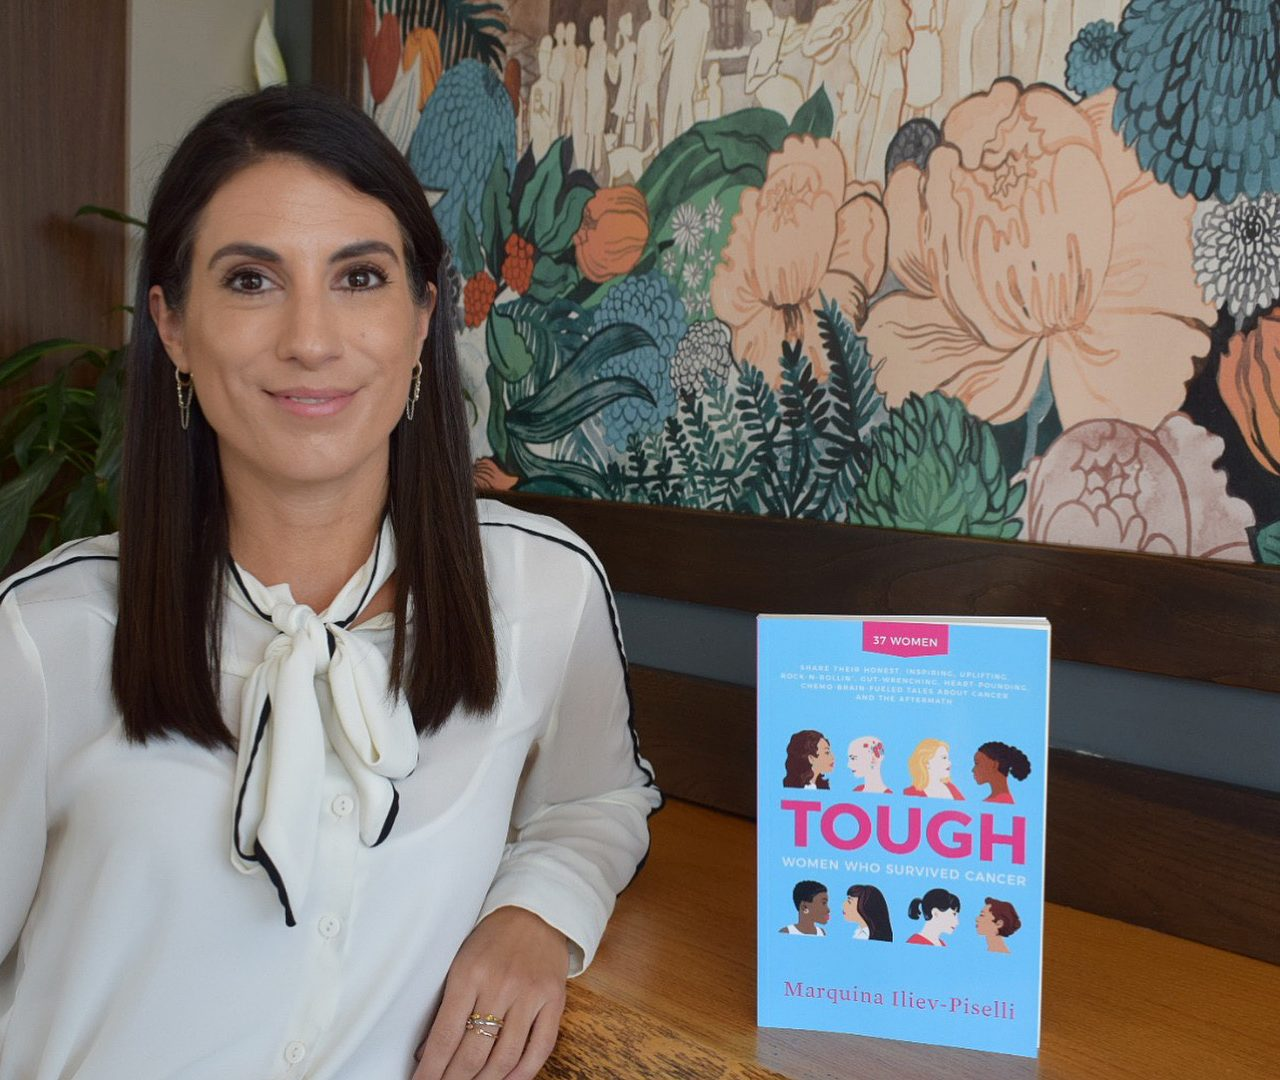 My Story in Huntington Now: How Cancer and Blogging led to 'Tough' Chapter